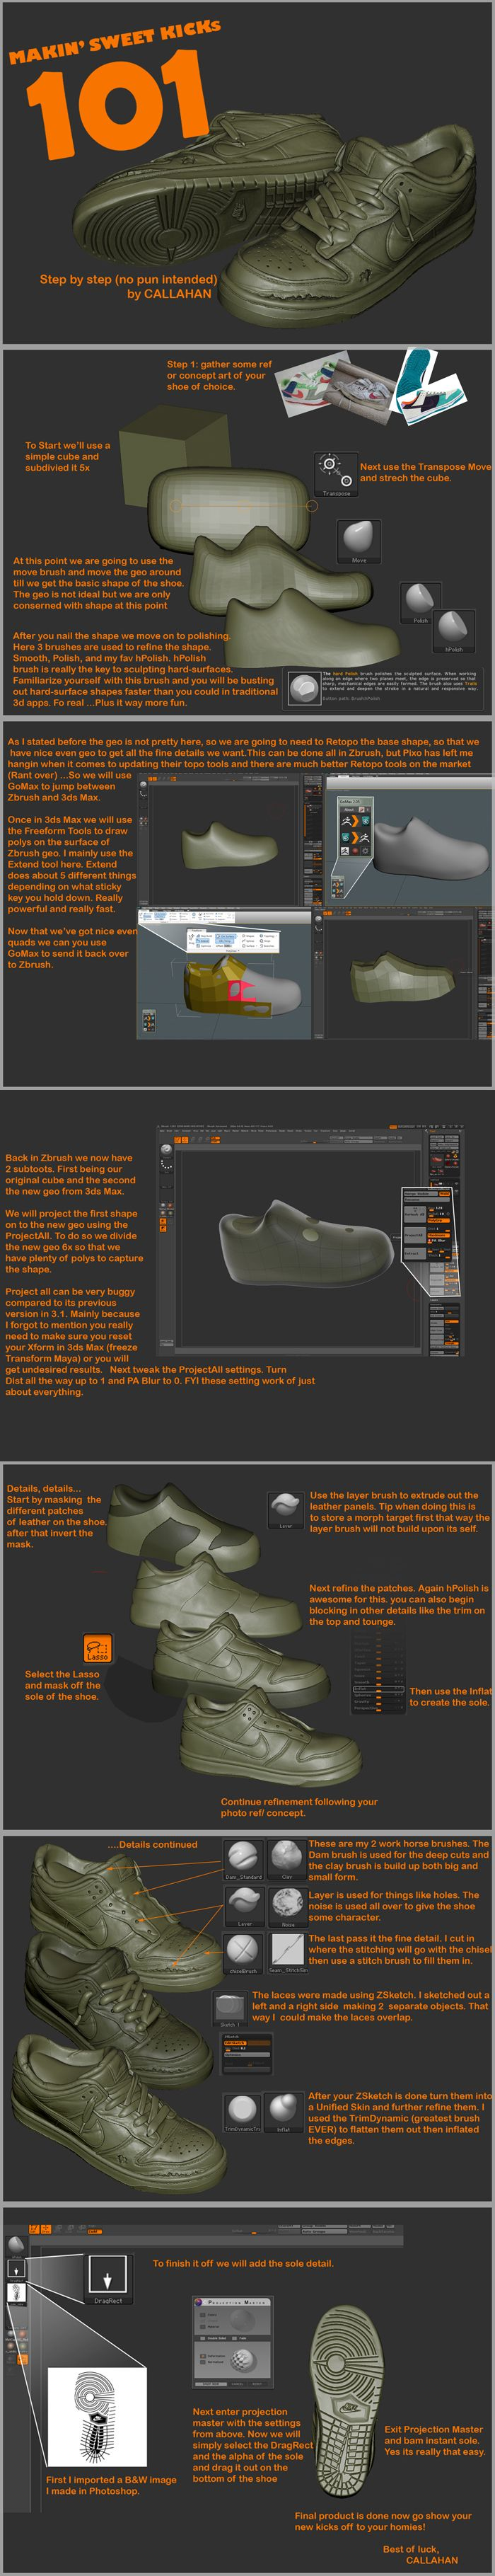 http://forum.zbrush.fr/index.php?topic=6135.0#!prettyPhoto